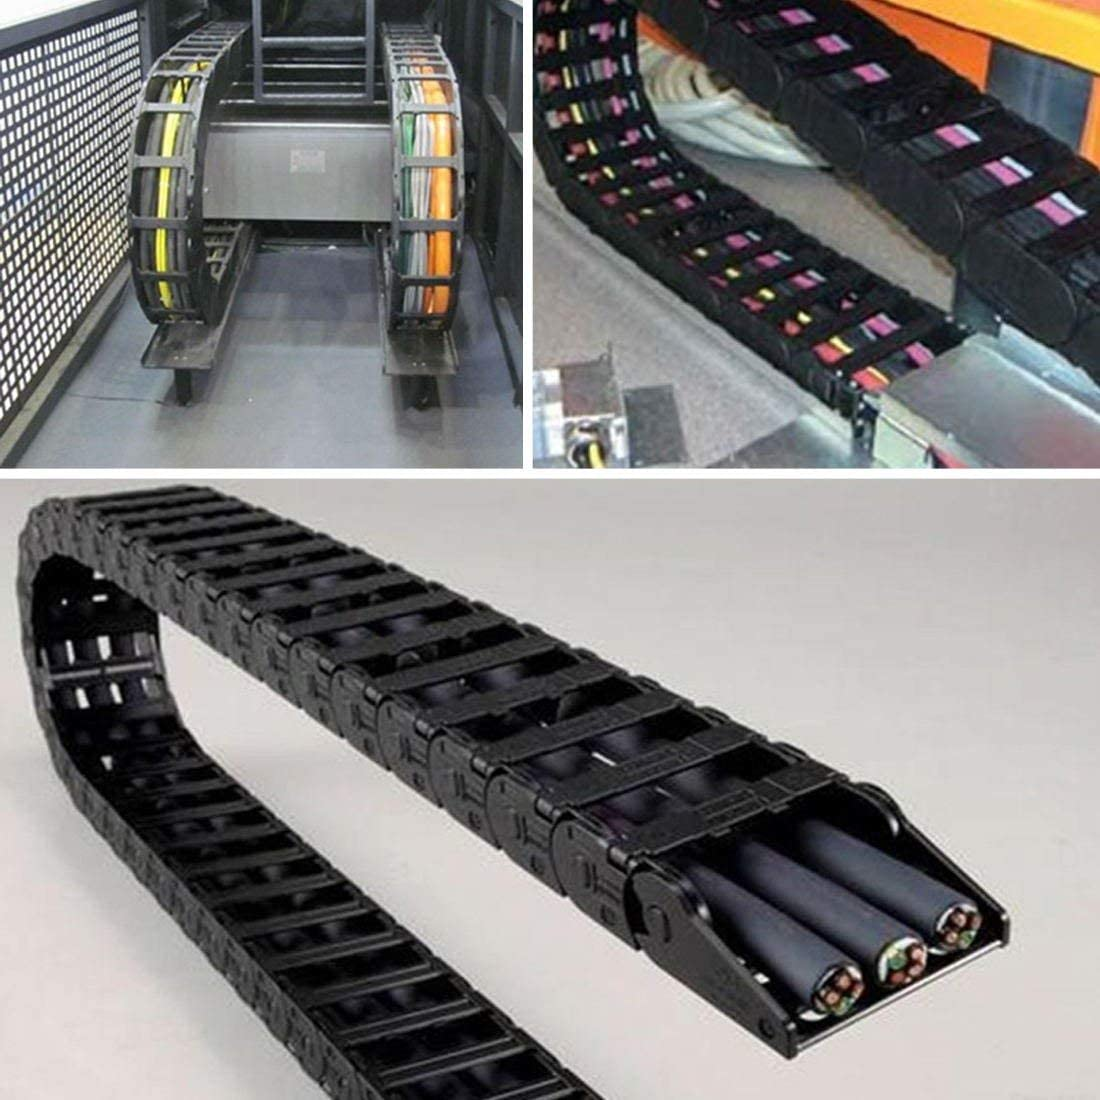 HAILINLING 5559007197 Semi Enclosed Type Plastic Towline Machine Tool Cable Carrier Drag Chain Nested 1M Length 10 x 10MM for The Drag Chain Has Been Widely Used in CNC Machine Tools